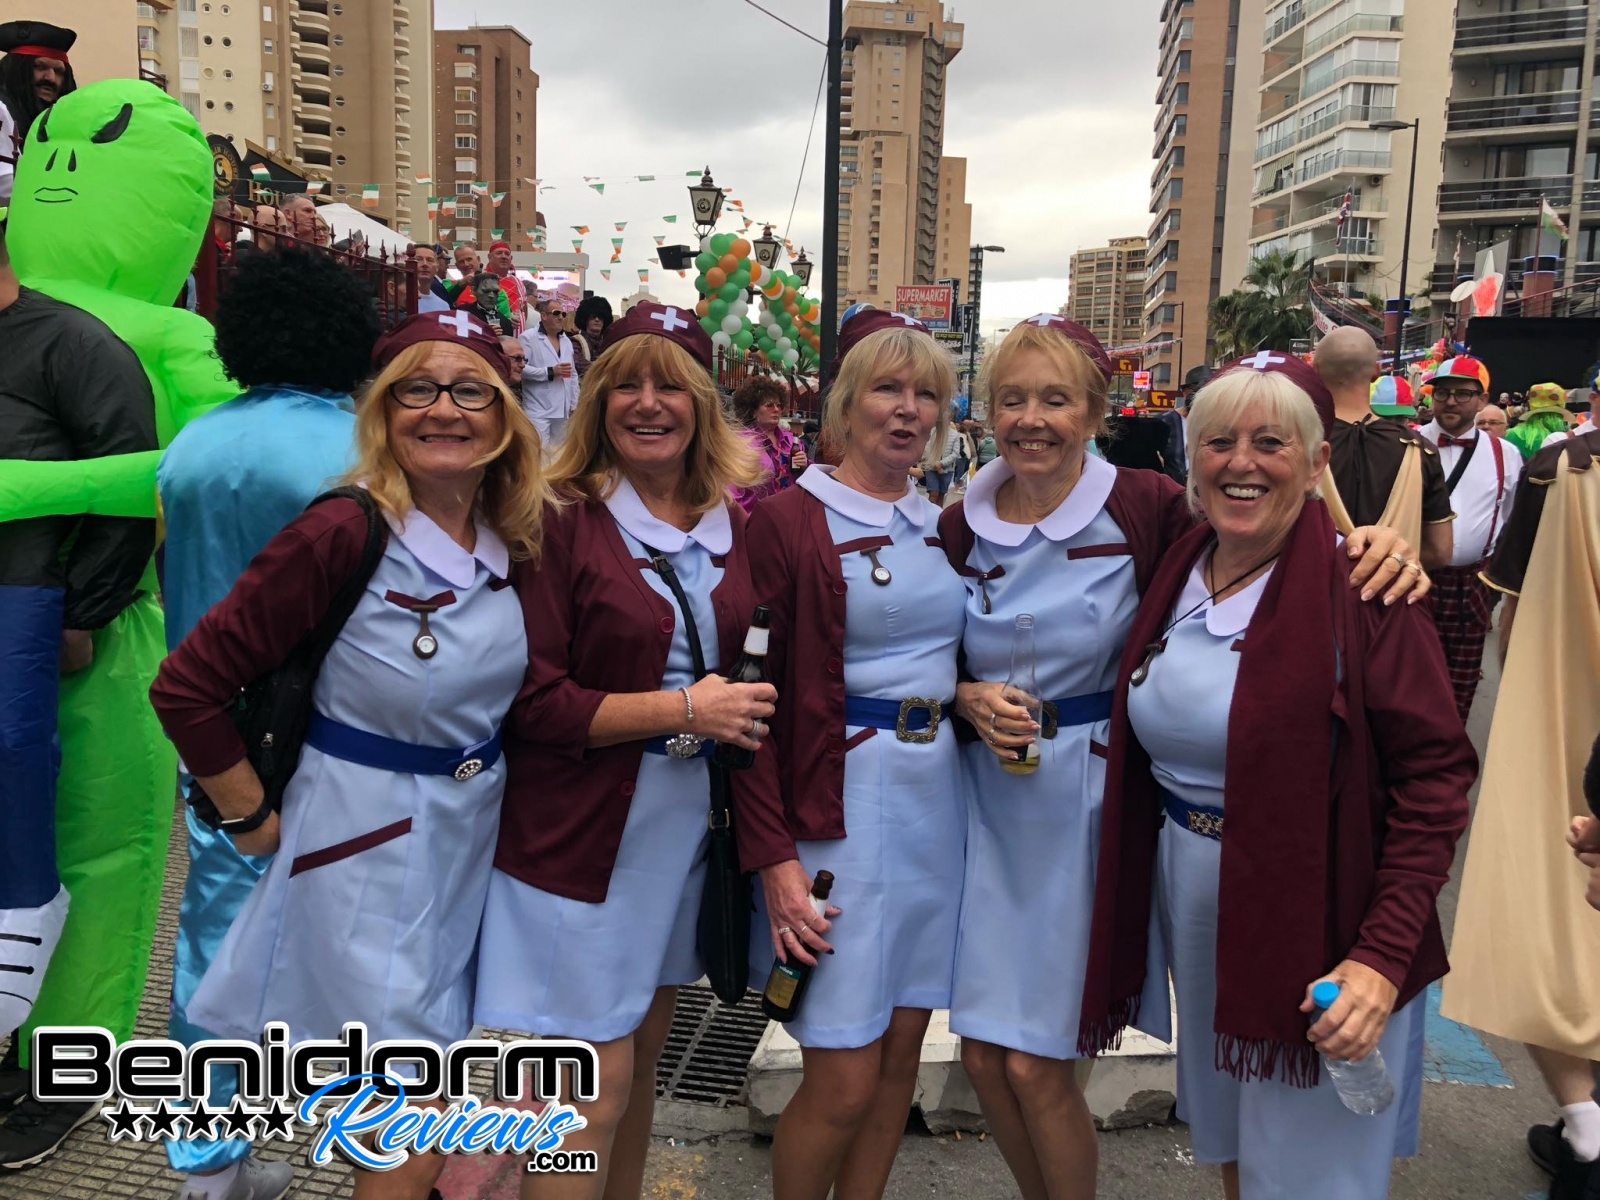 Benidorm-Fiestas-2019-Fancy-Dress-22